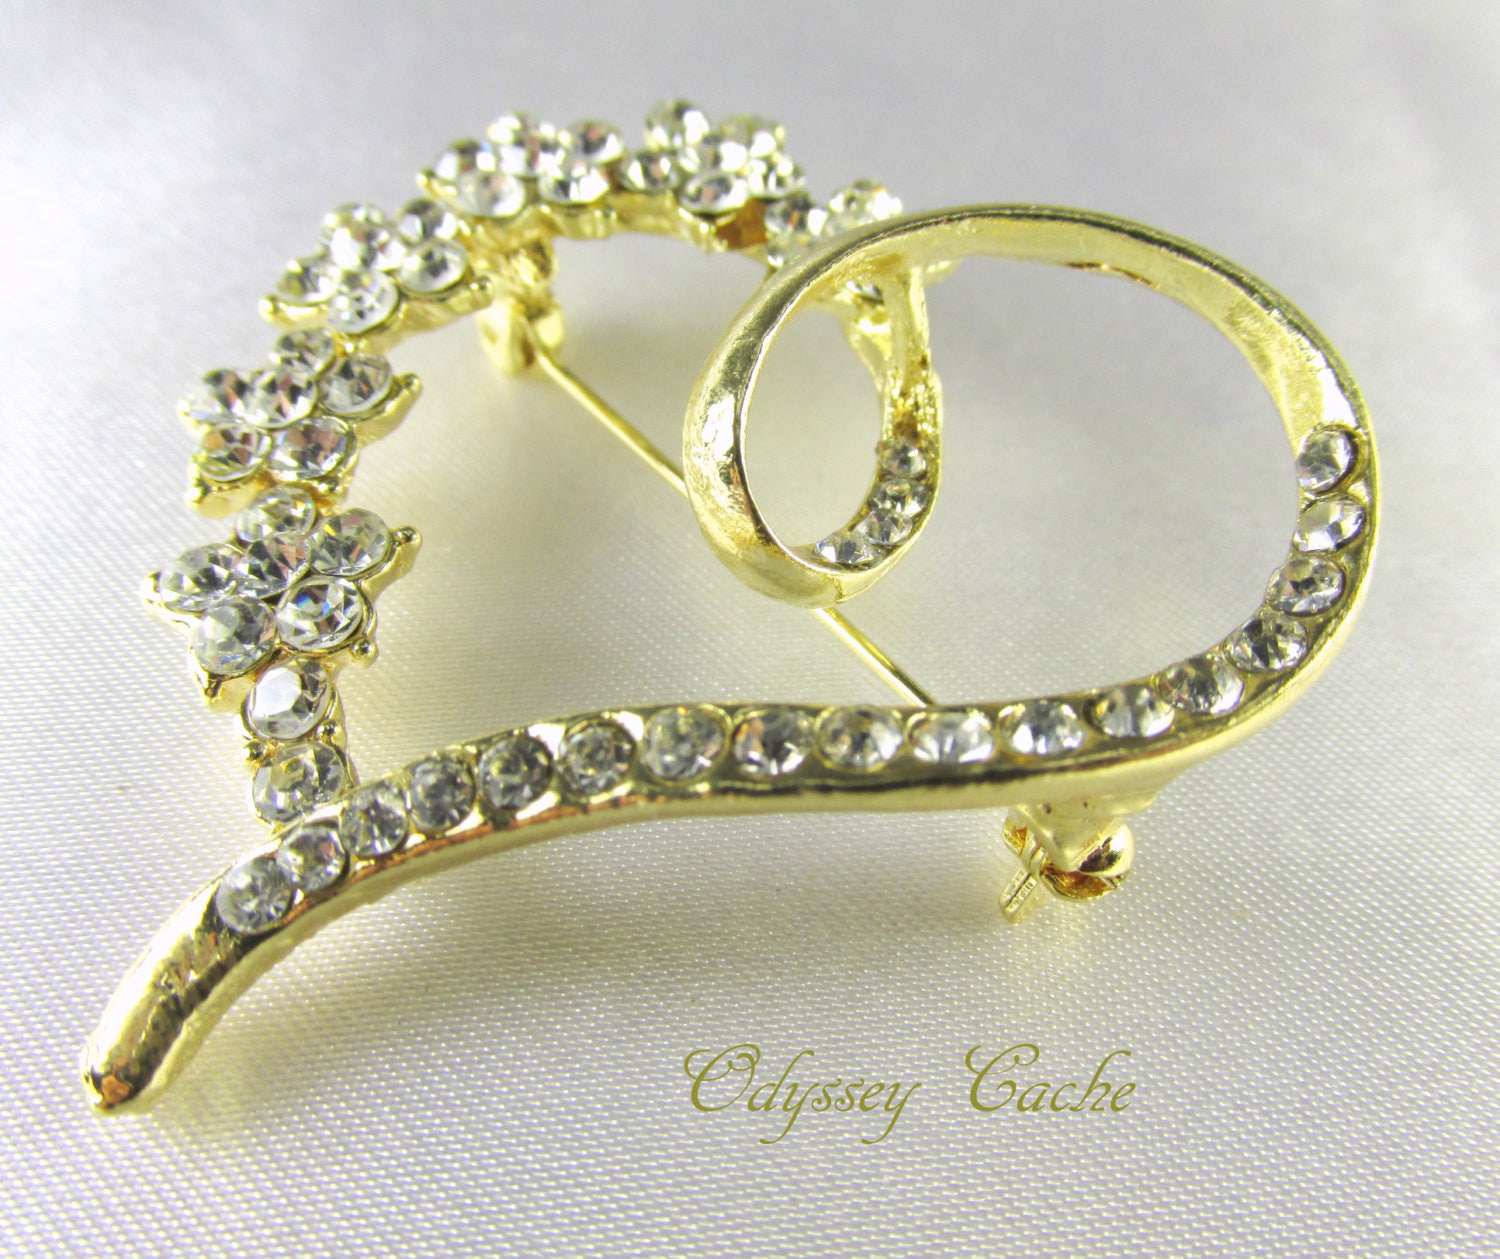 Gold Heart Brooch with Clear Crystals - Odyssey Cache - 2